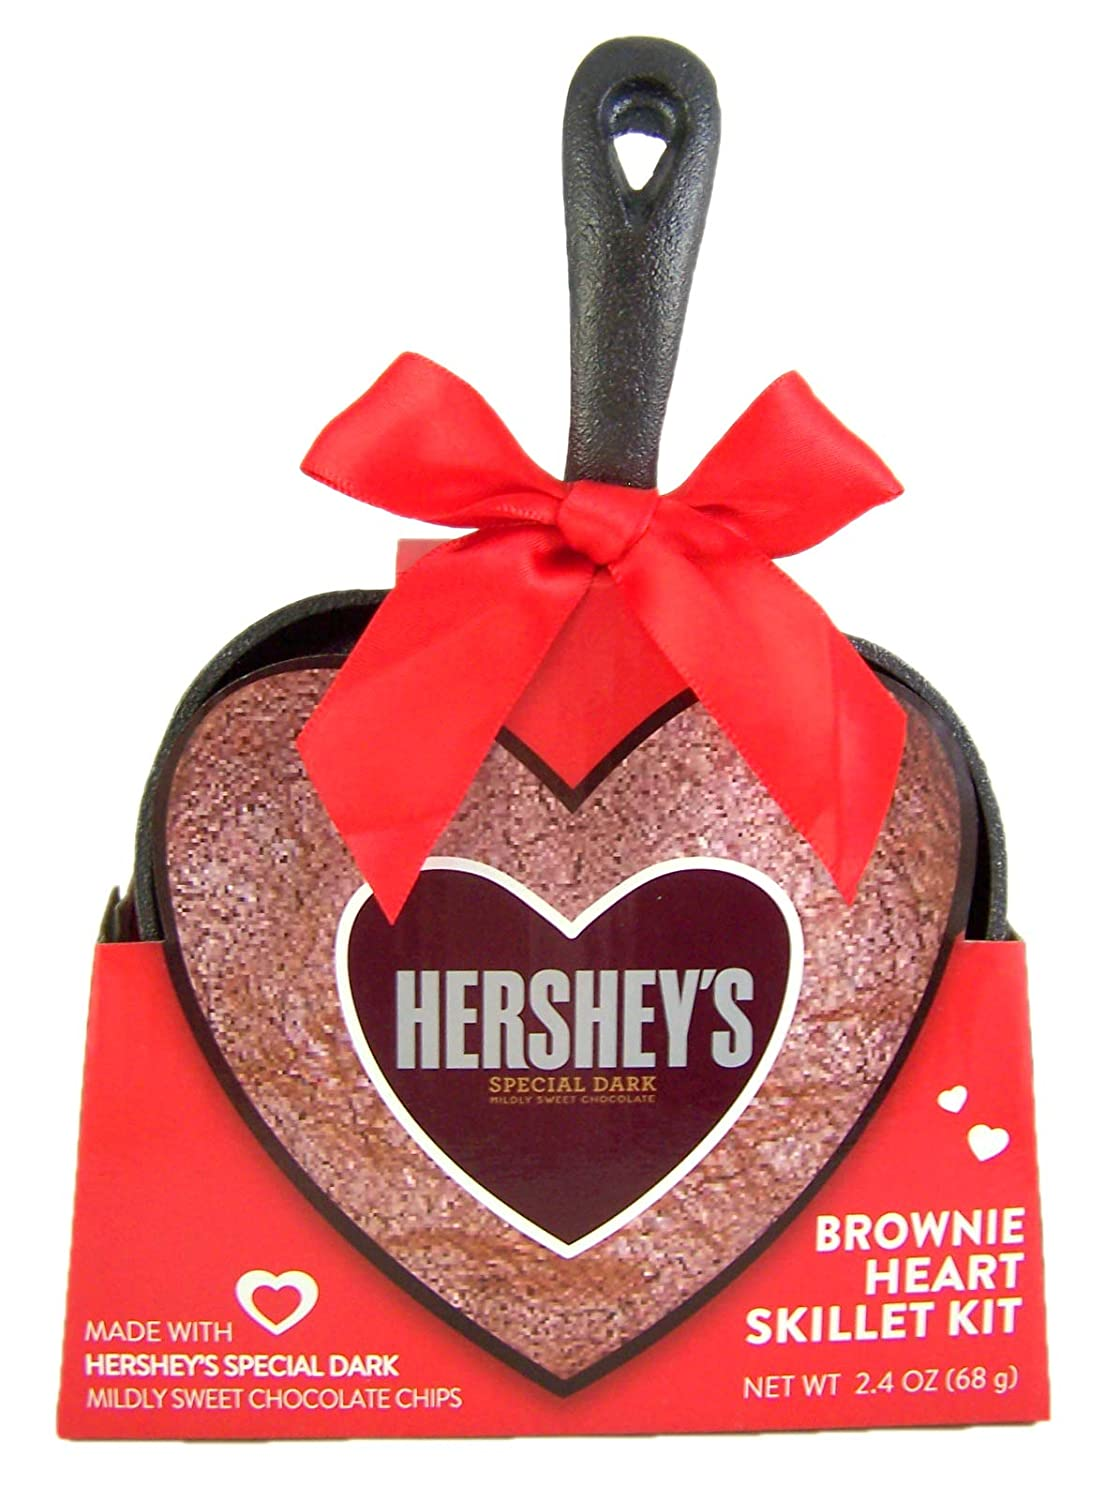 Heart shaped cast iron brownie pan from Hershey's.